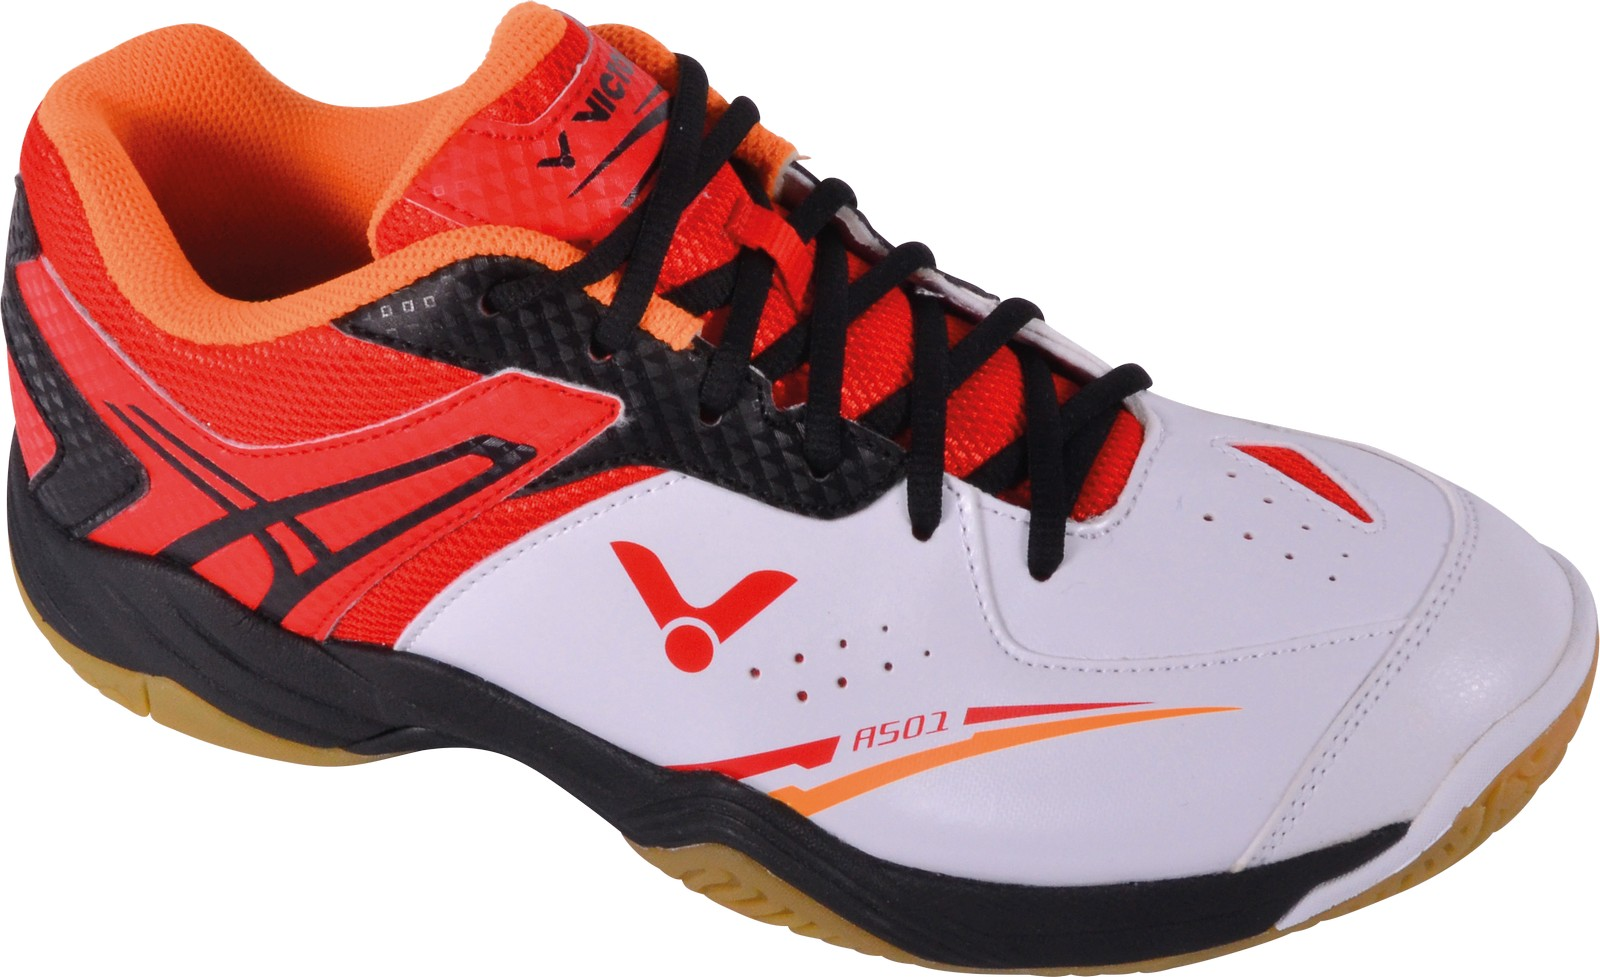 Details about Victor A501 White Red Indoor Sports Shoe Boot Badminton Squash Cushioning Size 43 show original title